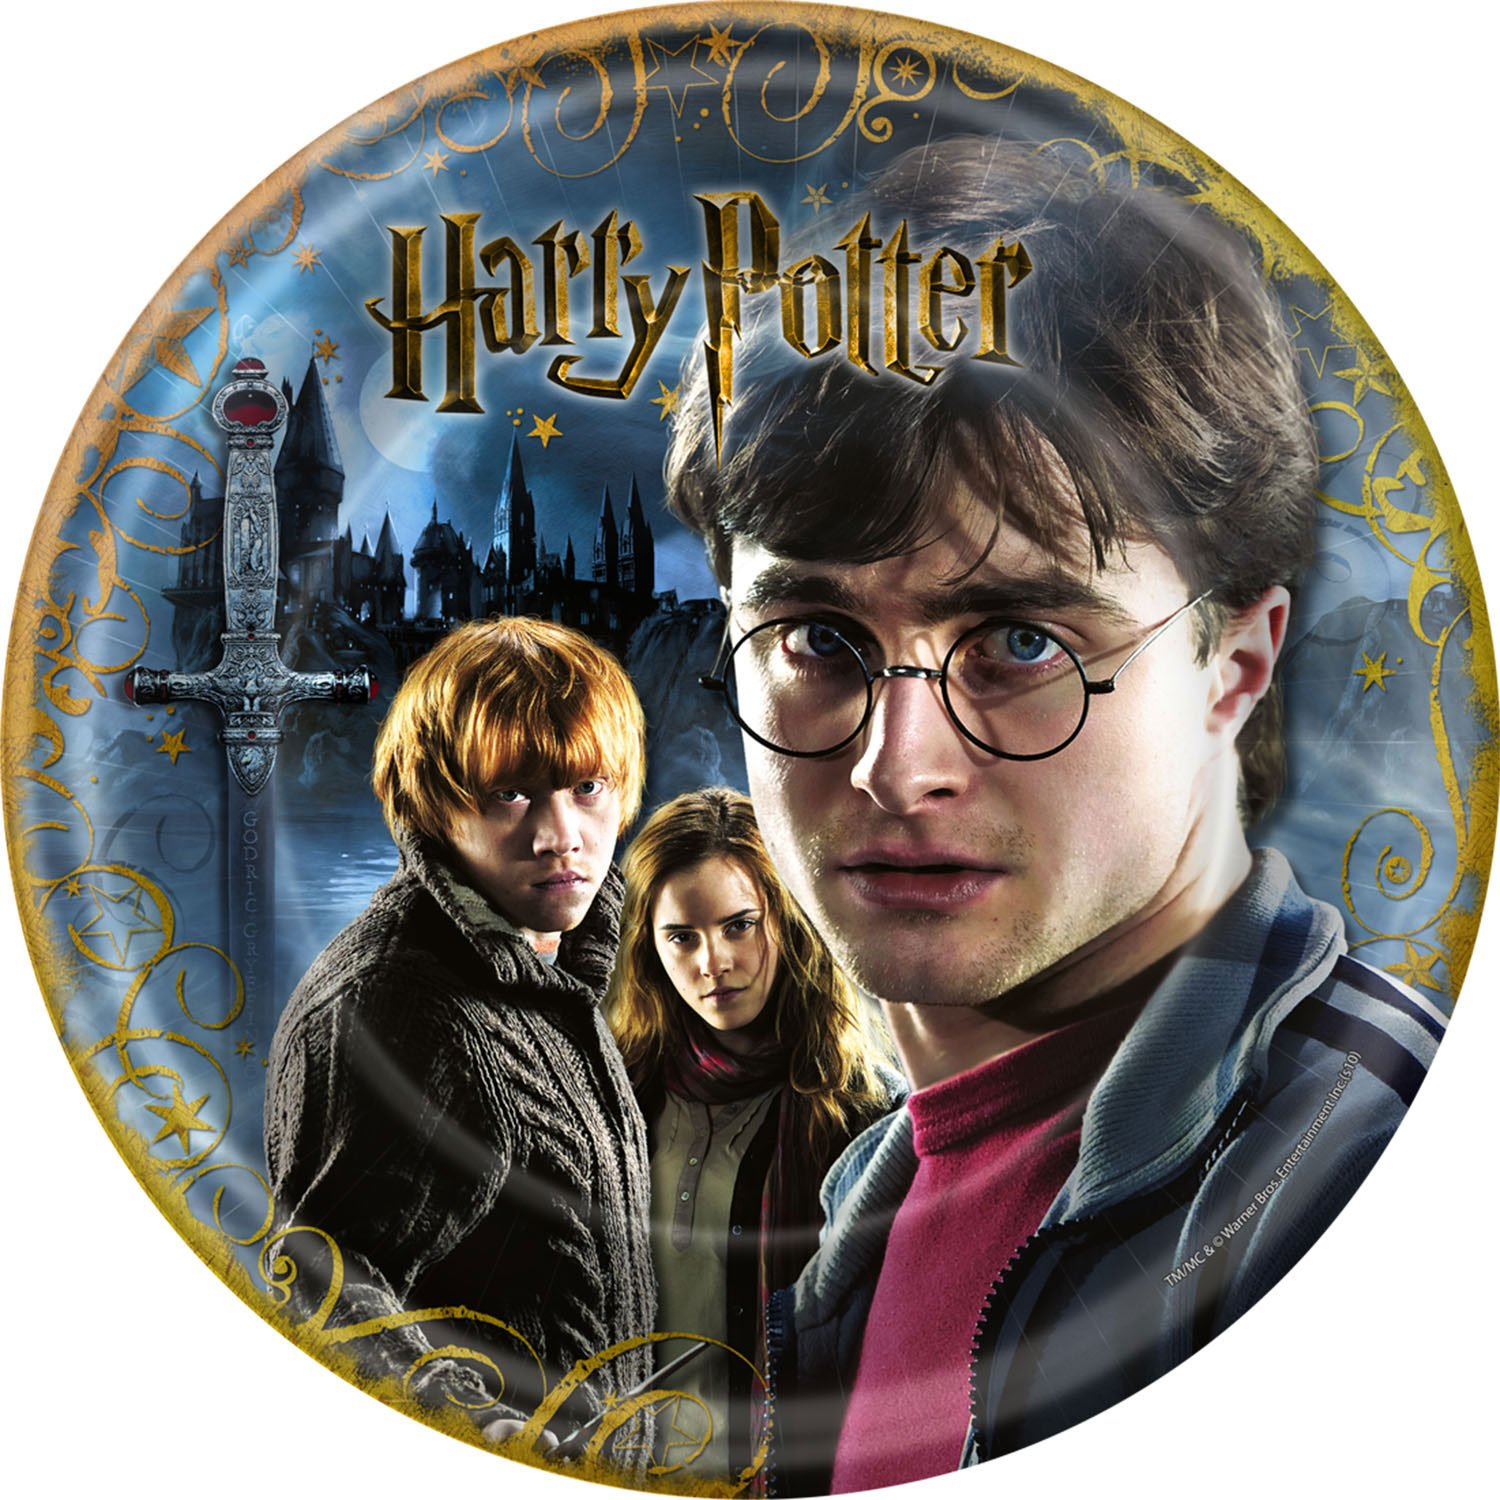 Harry Potter and the Deathly Hallows Dinner Plates 8ct